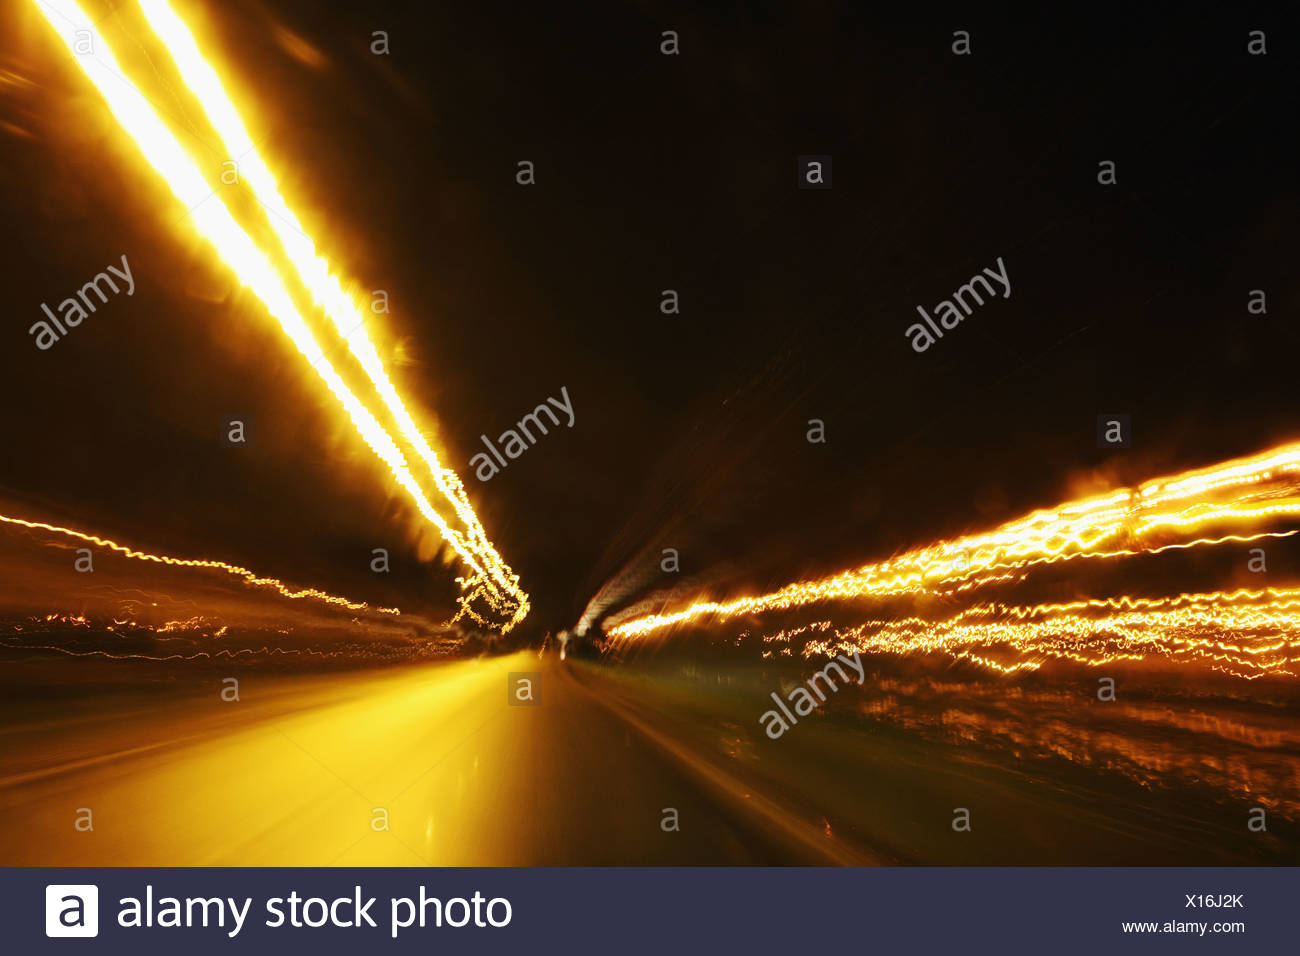 Tail lights on road at night - Stock Image